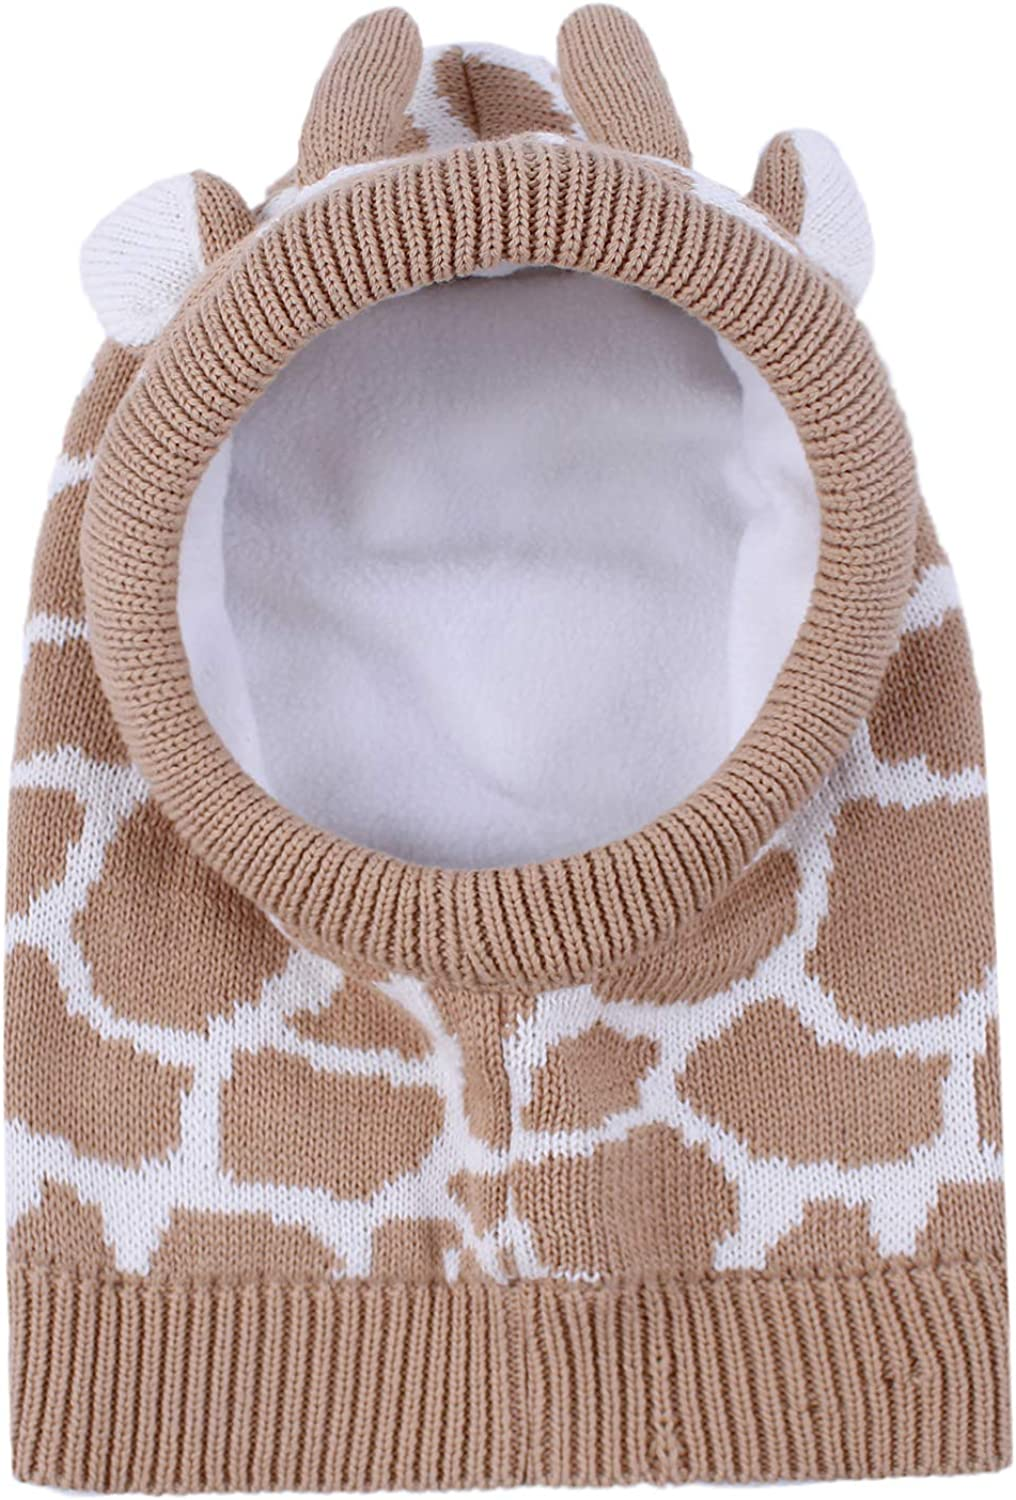 Hawiton Girls Boys Warm Knitted Beanie Hat Baby Winter Wool Caps and Neckerchief Scarf Set